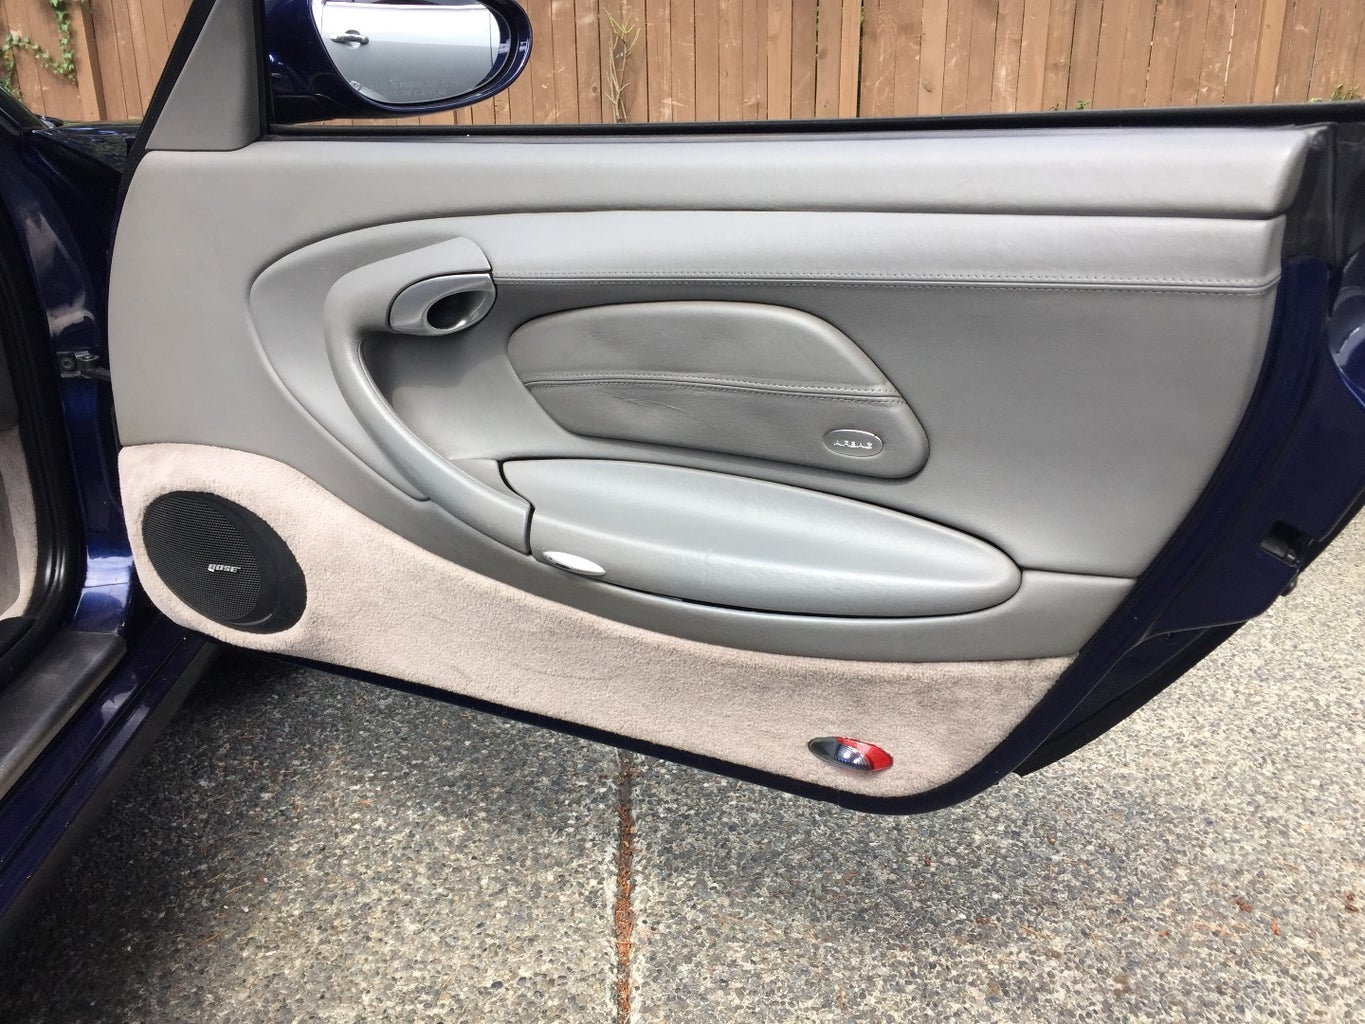 How to Remove the Door Panel From a Porsche 996